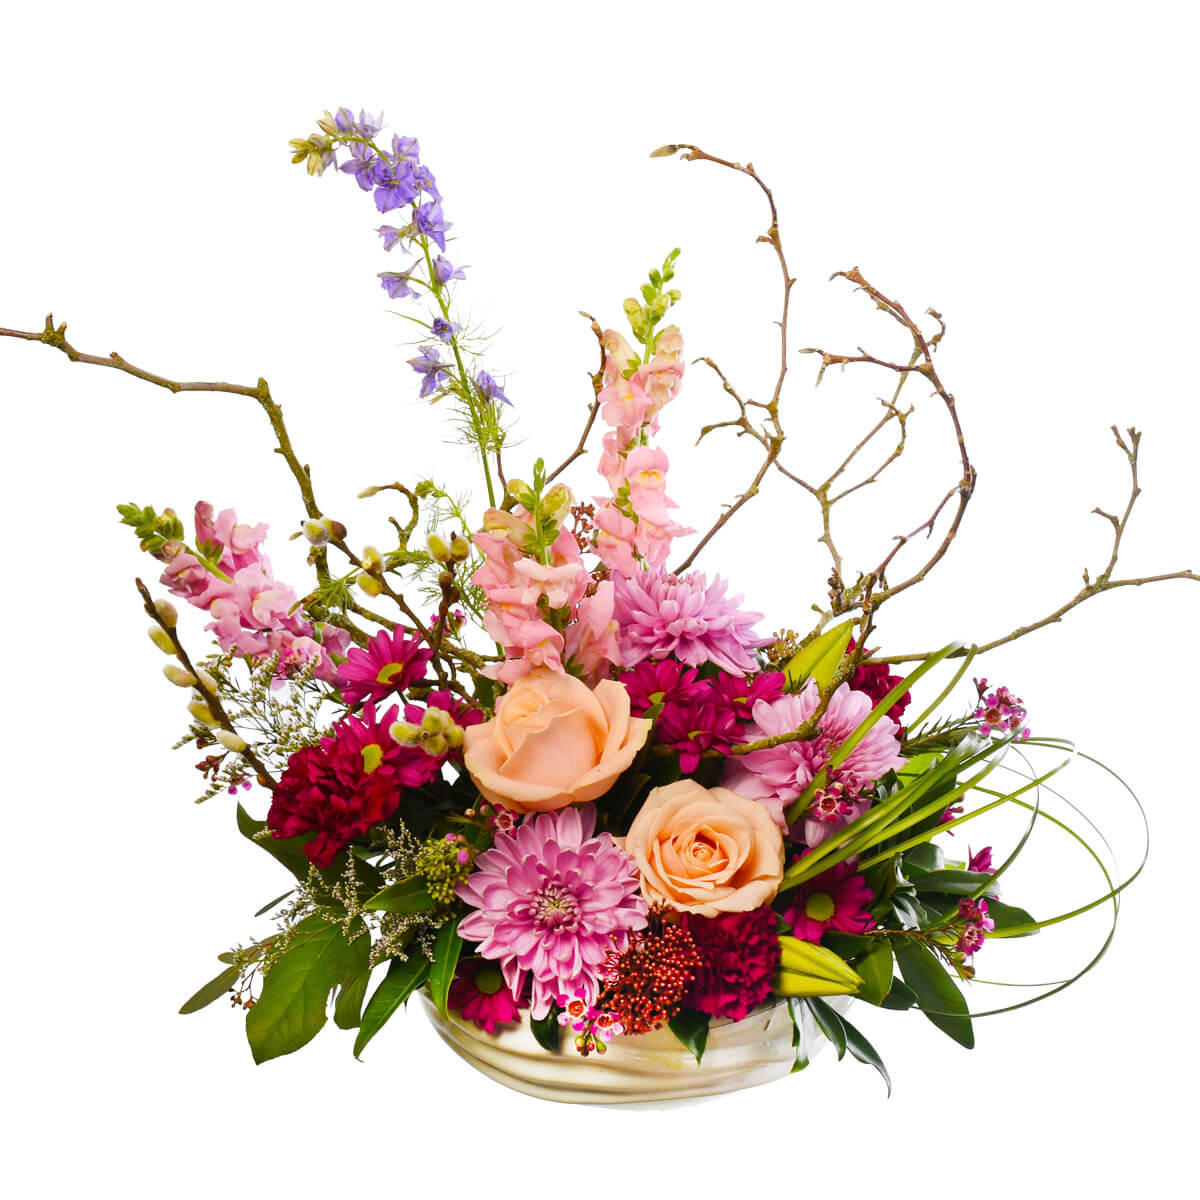 Flower arrangement for mom with pink and hot pink flowers